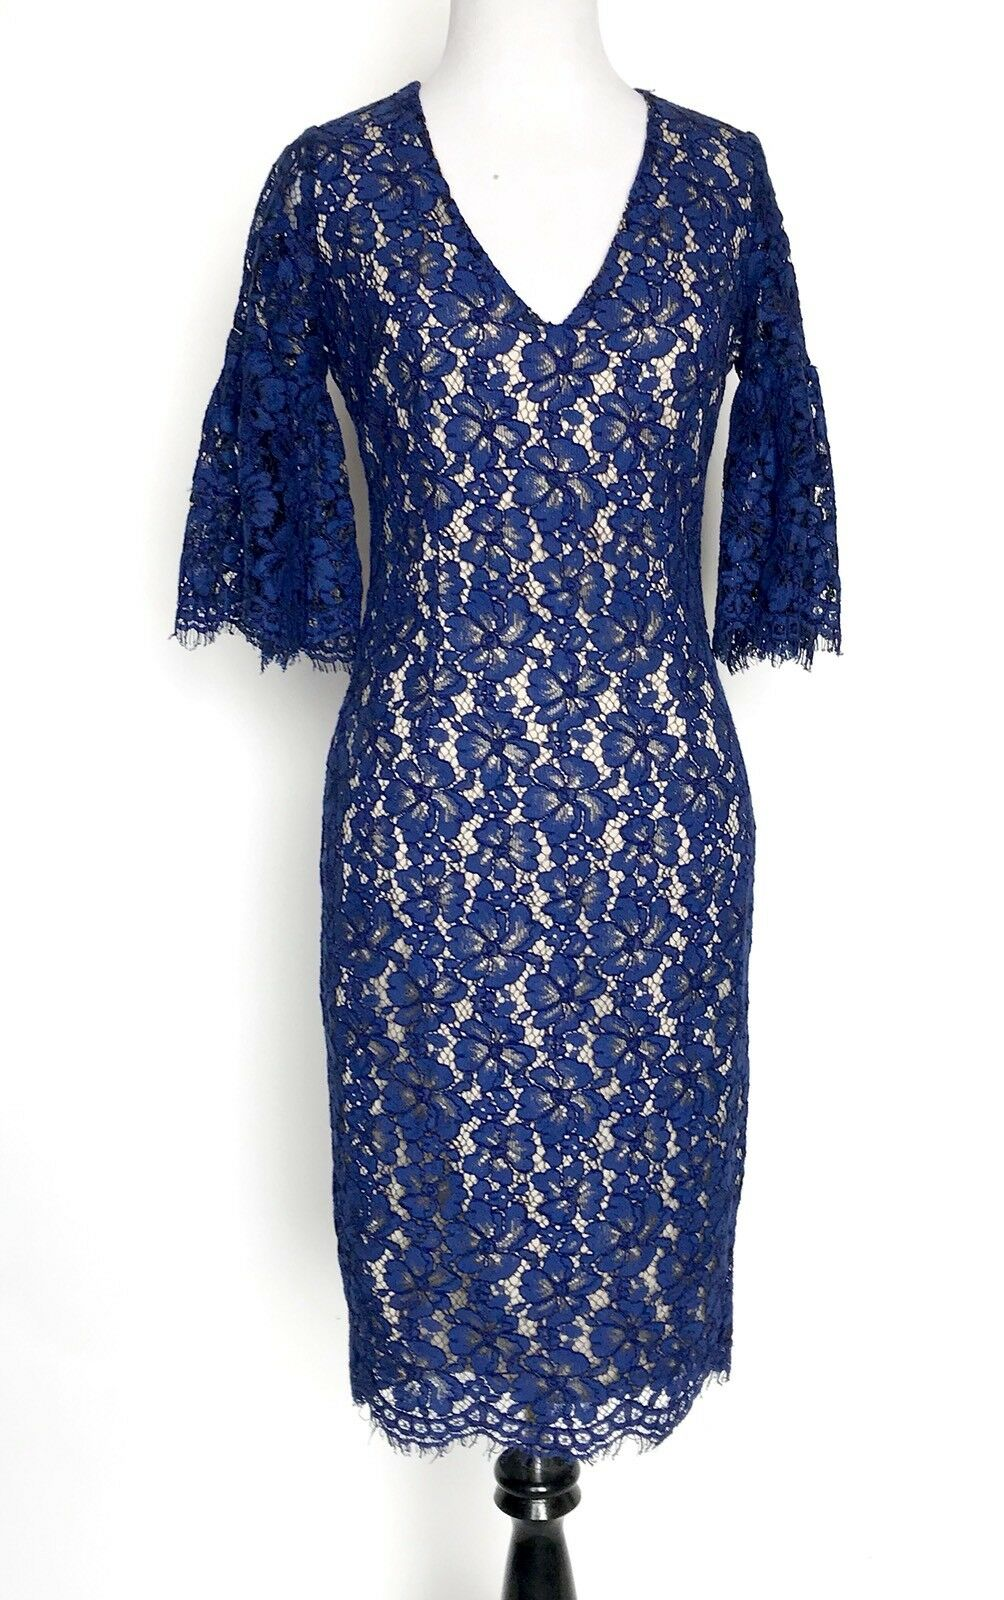 Alexia Admor bluee Lace Dress. Ruffle Bell Sleeve. Retail  Price  XS NWT